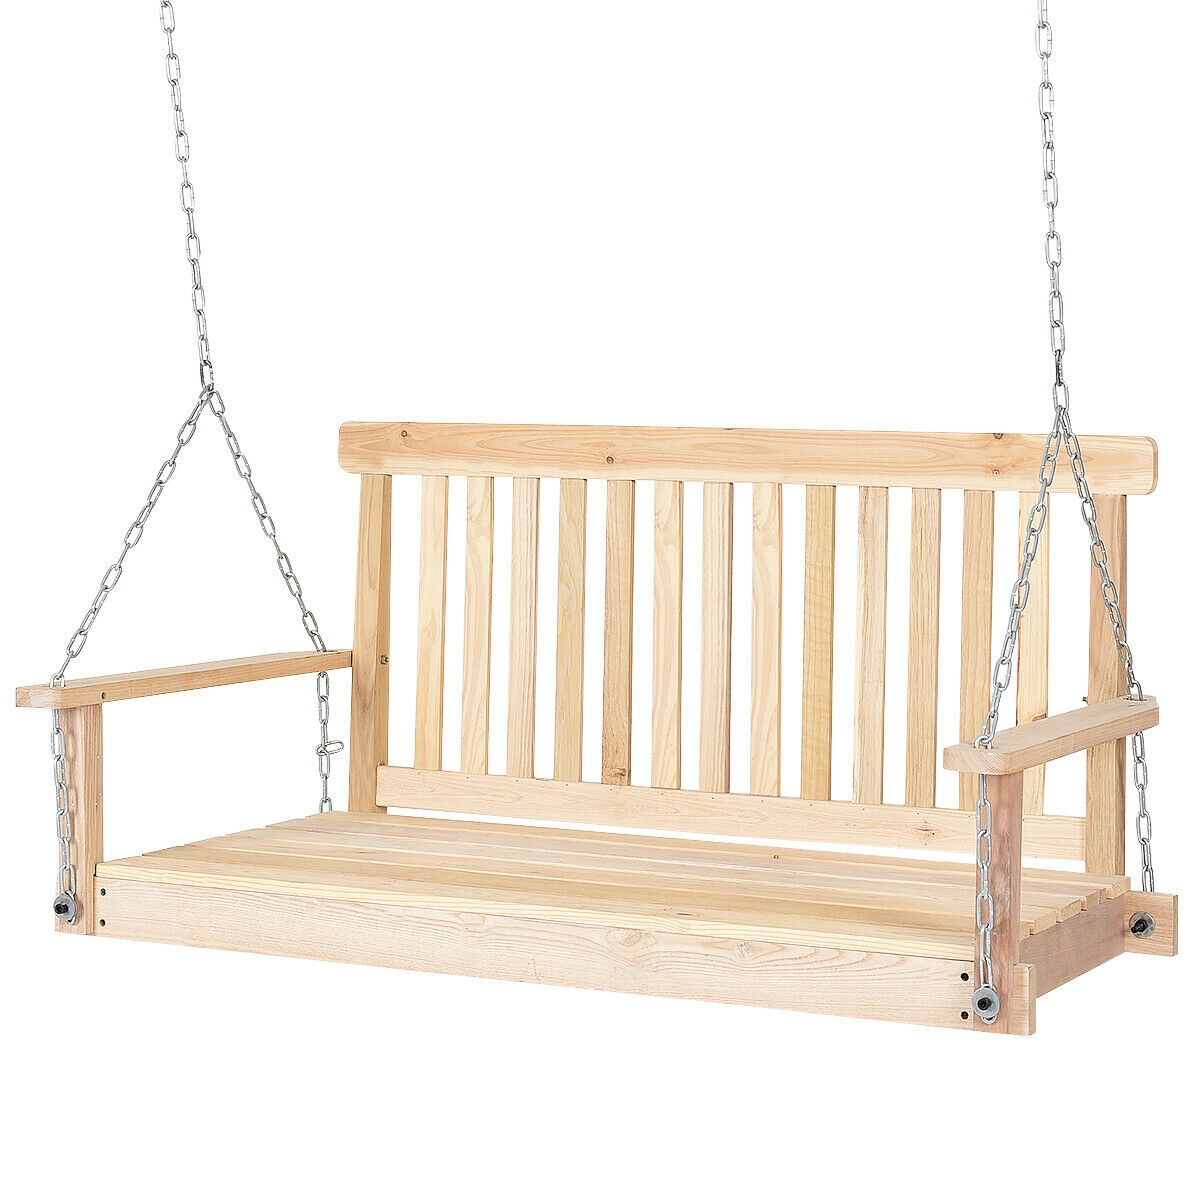 4' Wood Garden Hanging Seat Chains Porch Swing Intended For Swing Seats With Chains (View 24 of 25)